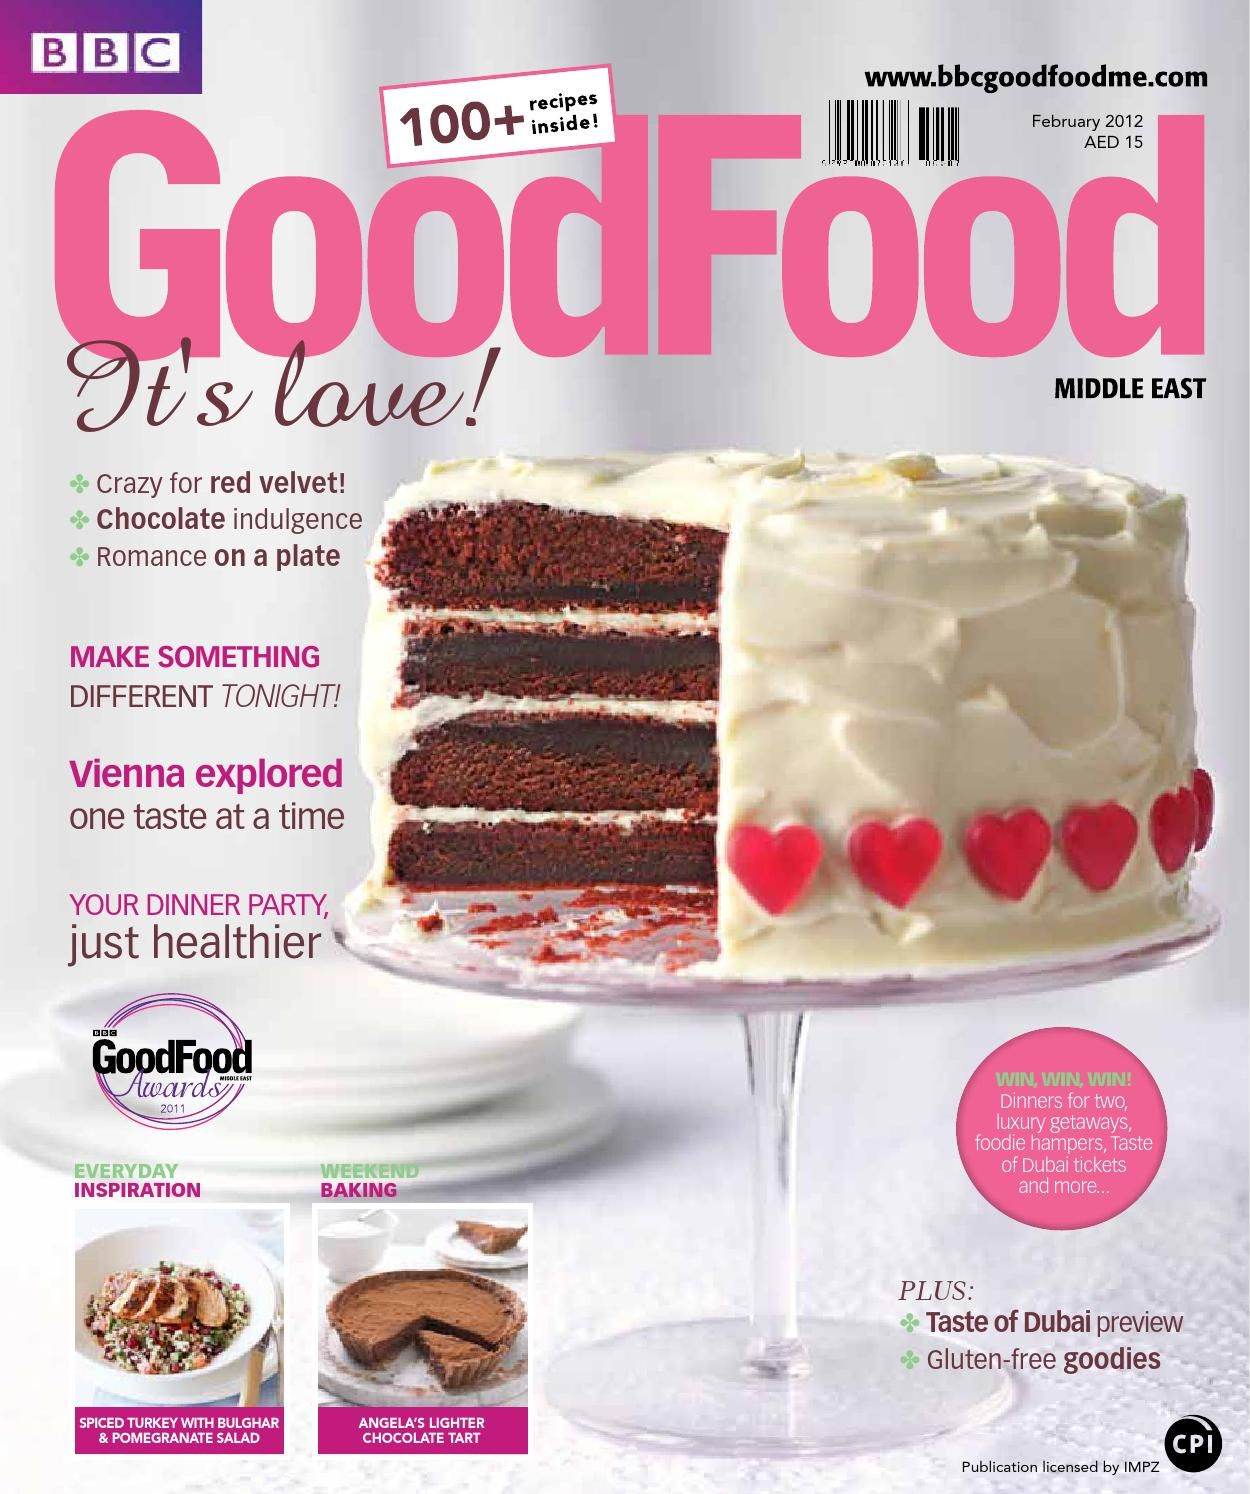 Bbc good food middle east magazine middle east everyday dishes bbc good food middle east magazine by bbc good food me issuu forumfinder Images